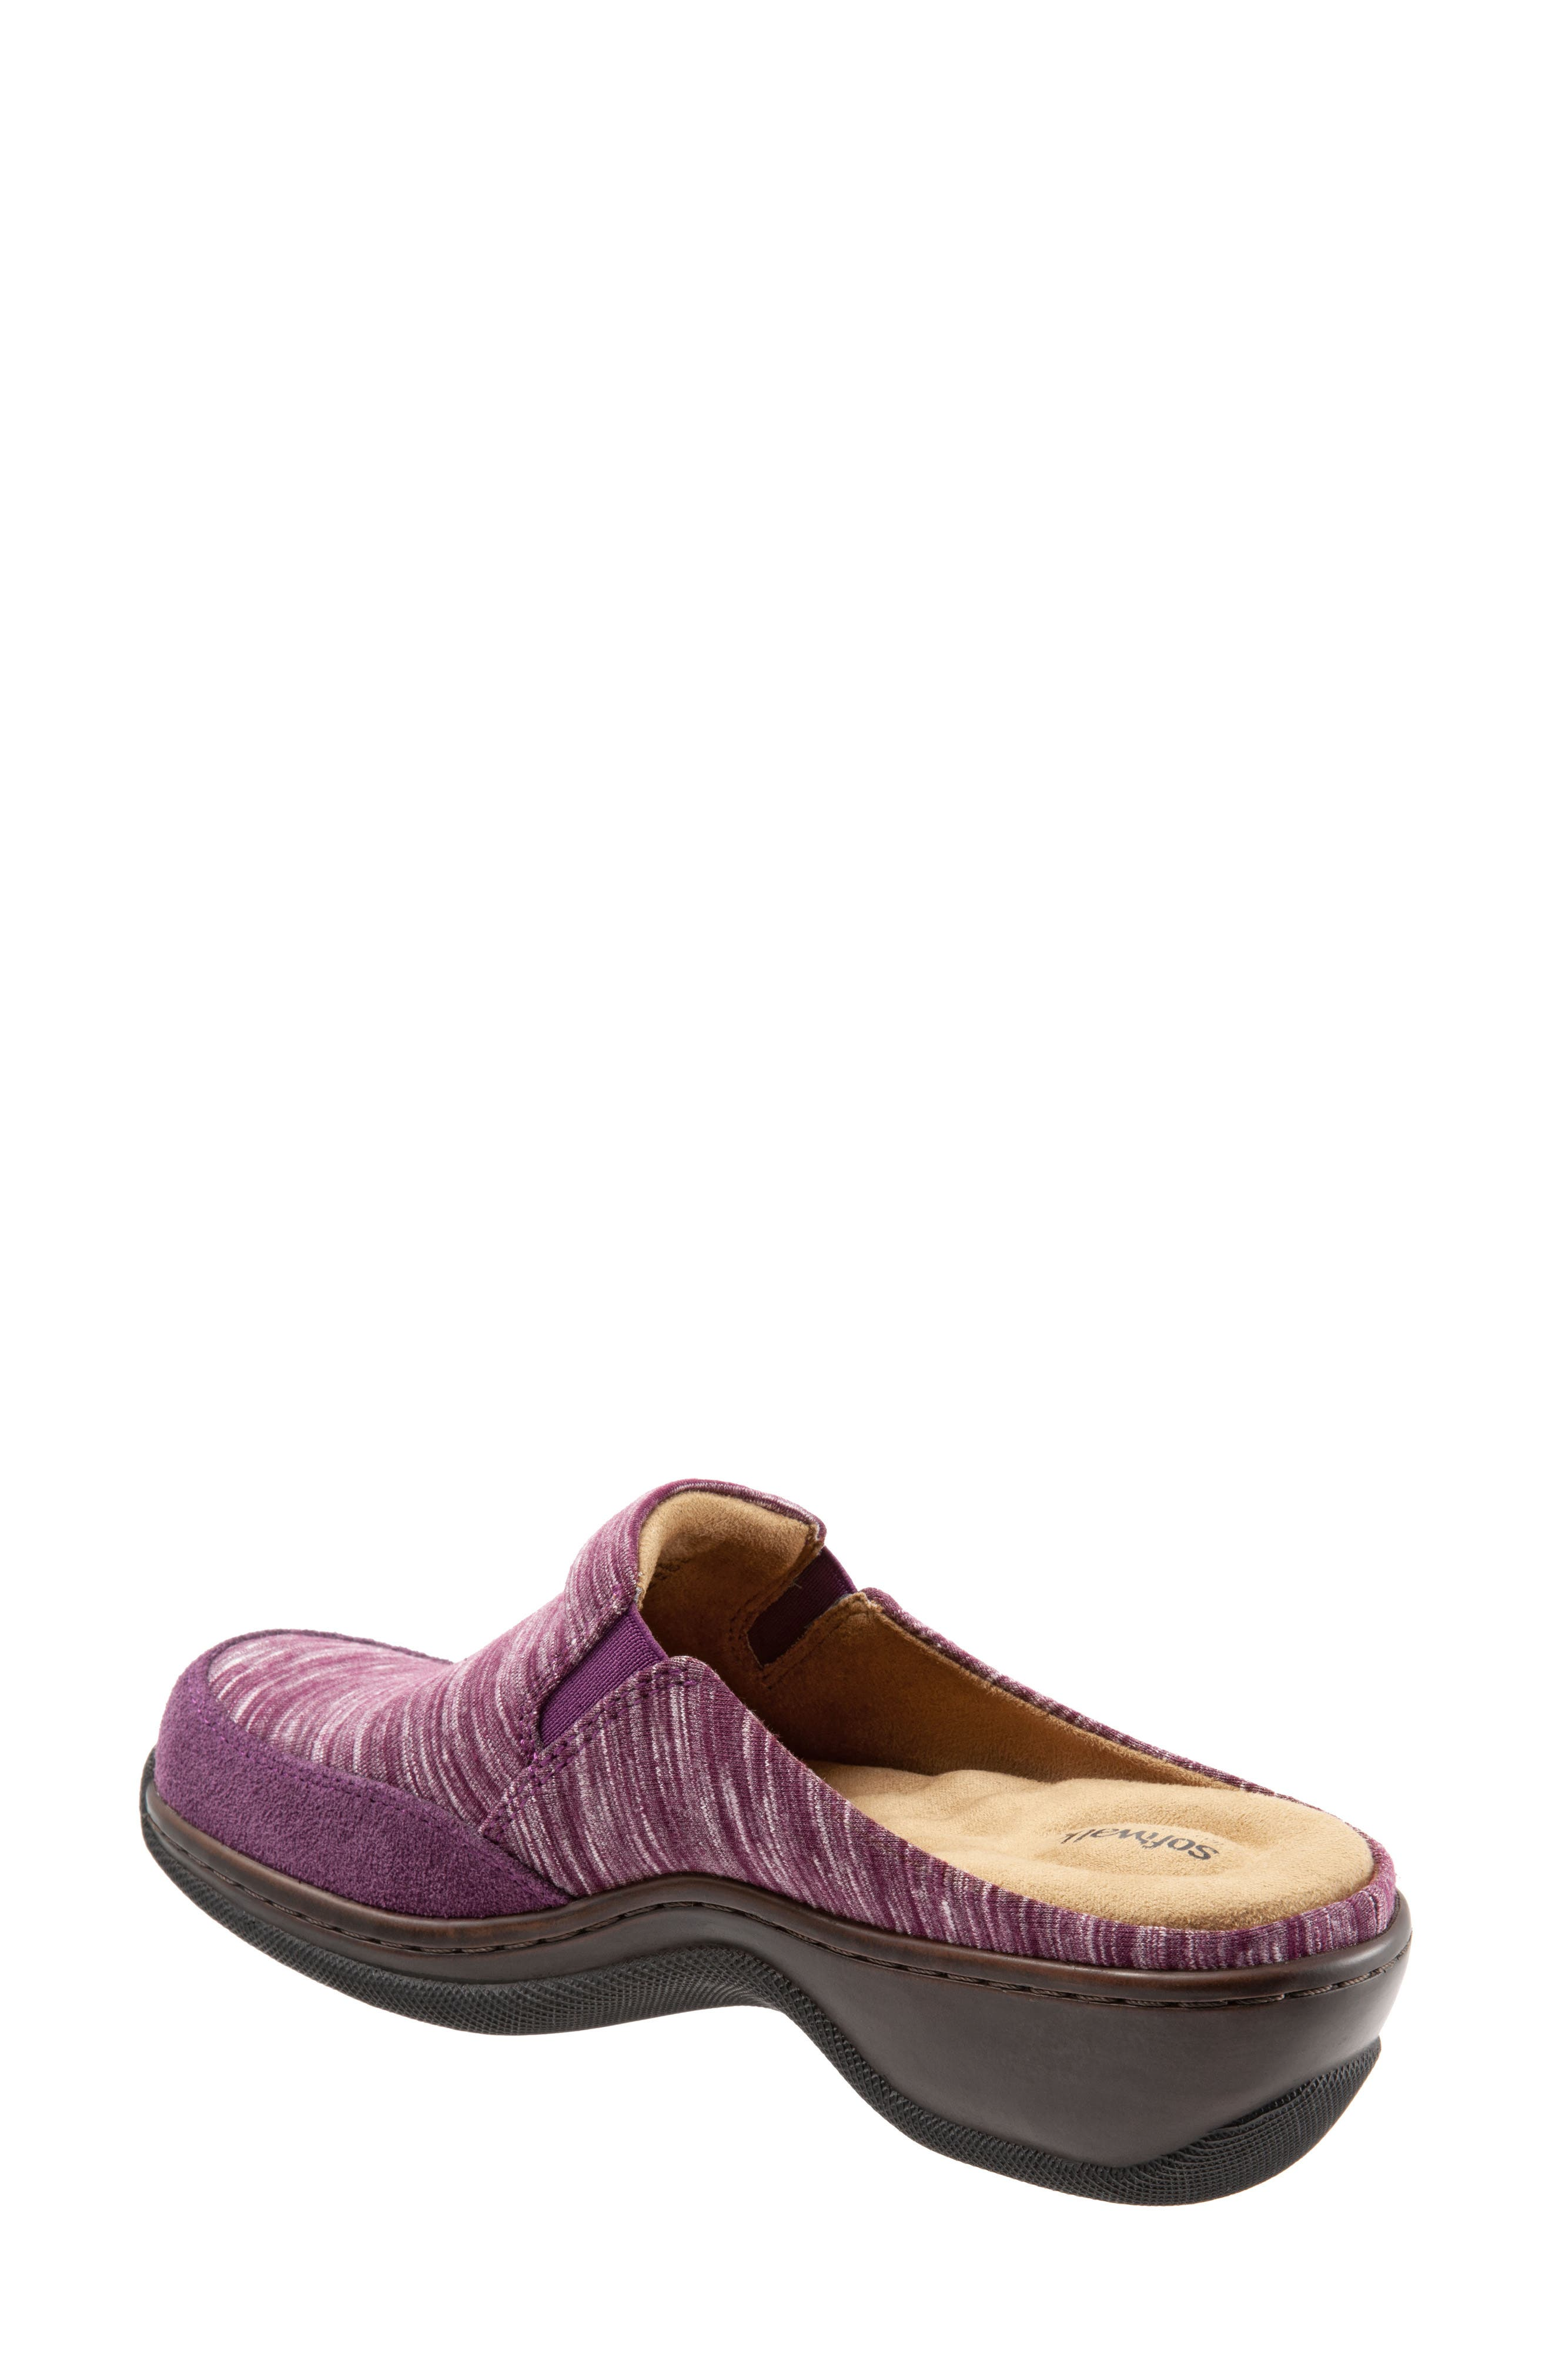 Alcon Clog,                             Alternate thumbnail 2, color,                             930